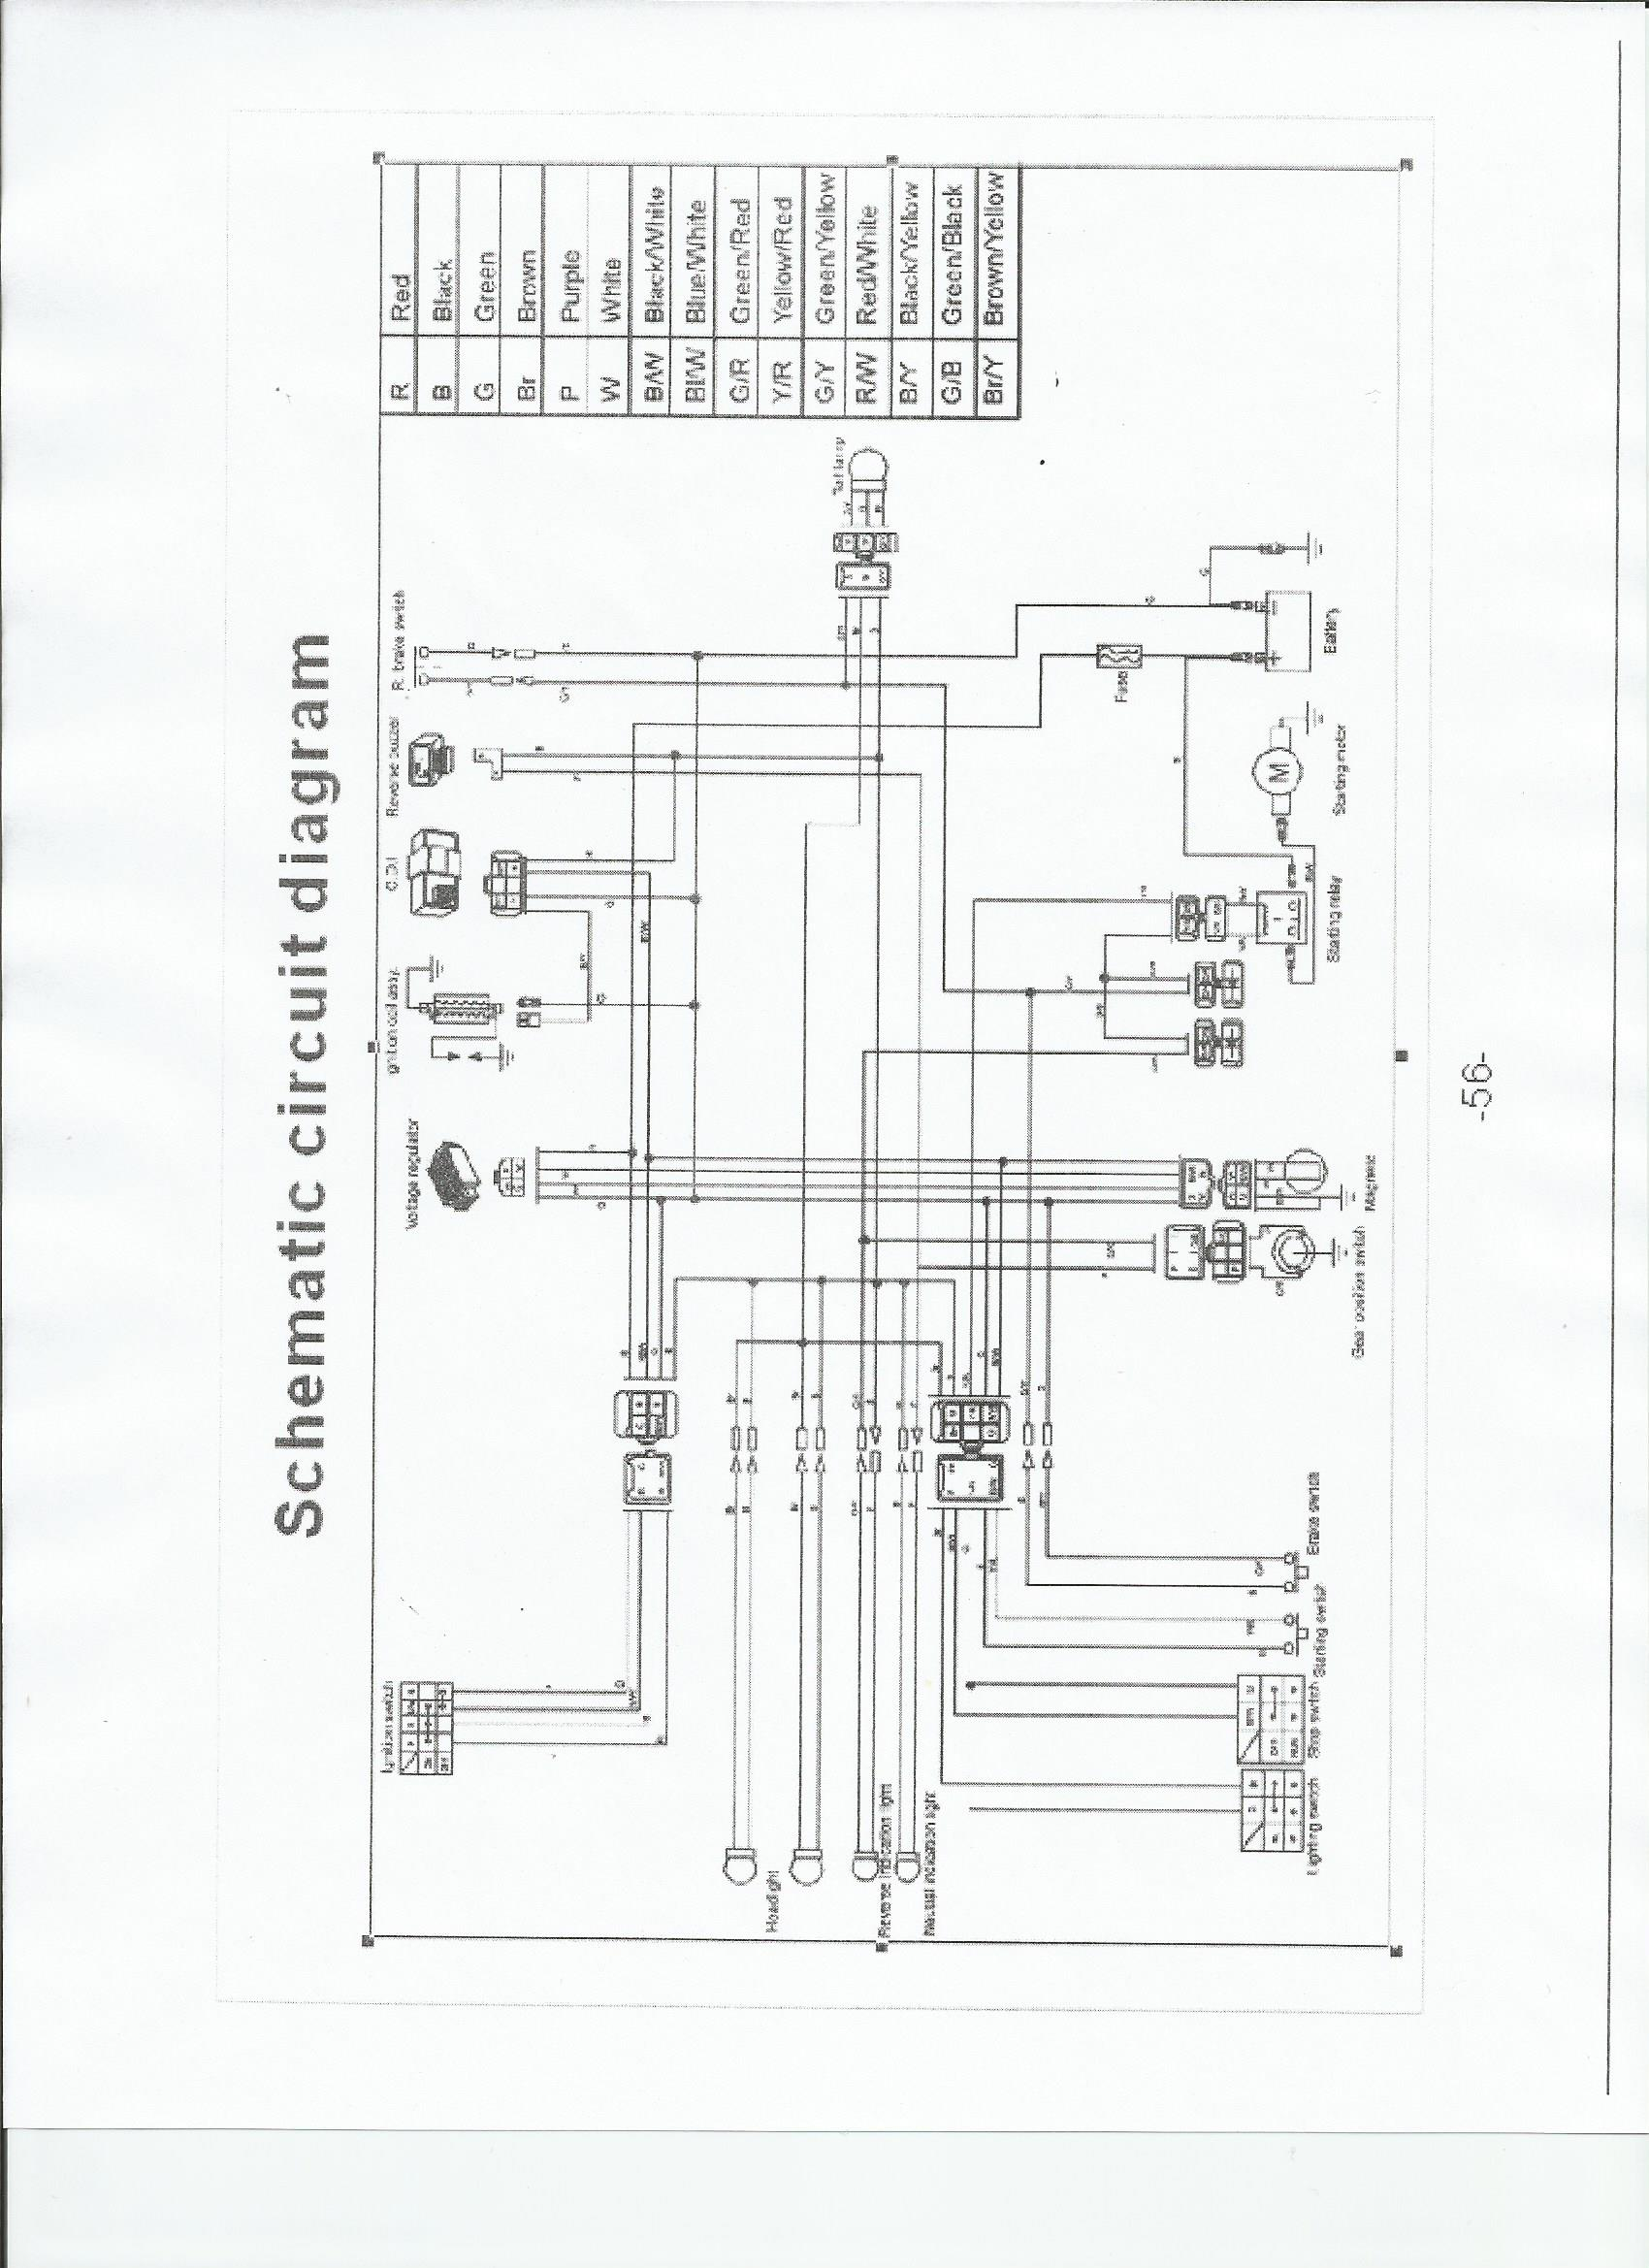 Mesmerizing 1999 Honda 400ex Wiring Diagram Ideas - Best Image ...